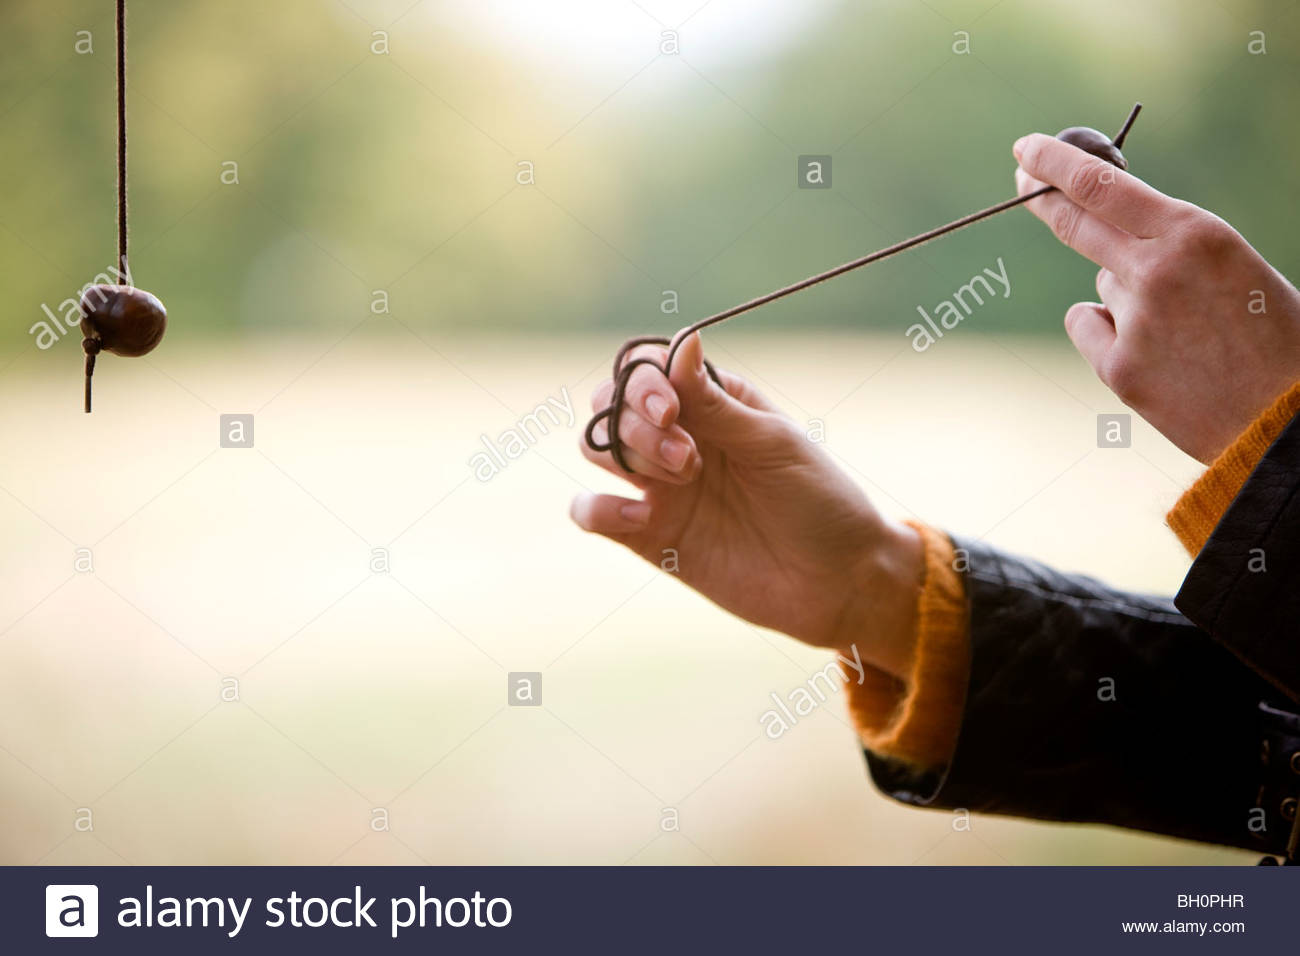 A young woman playing conkers - Stock Image